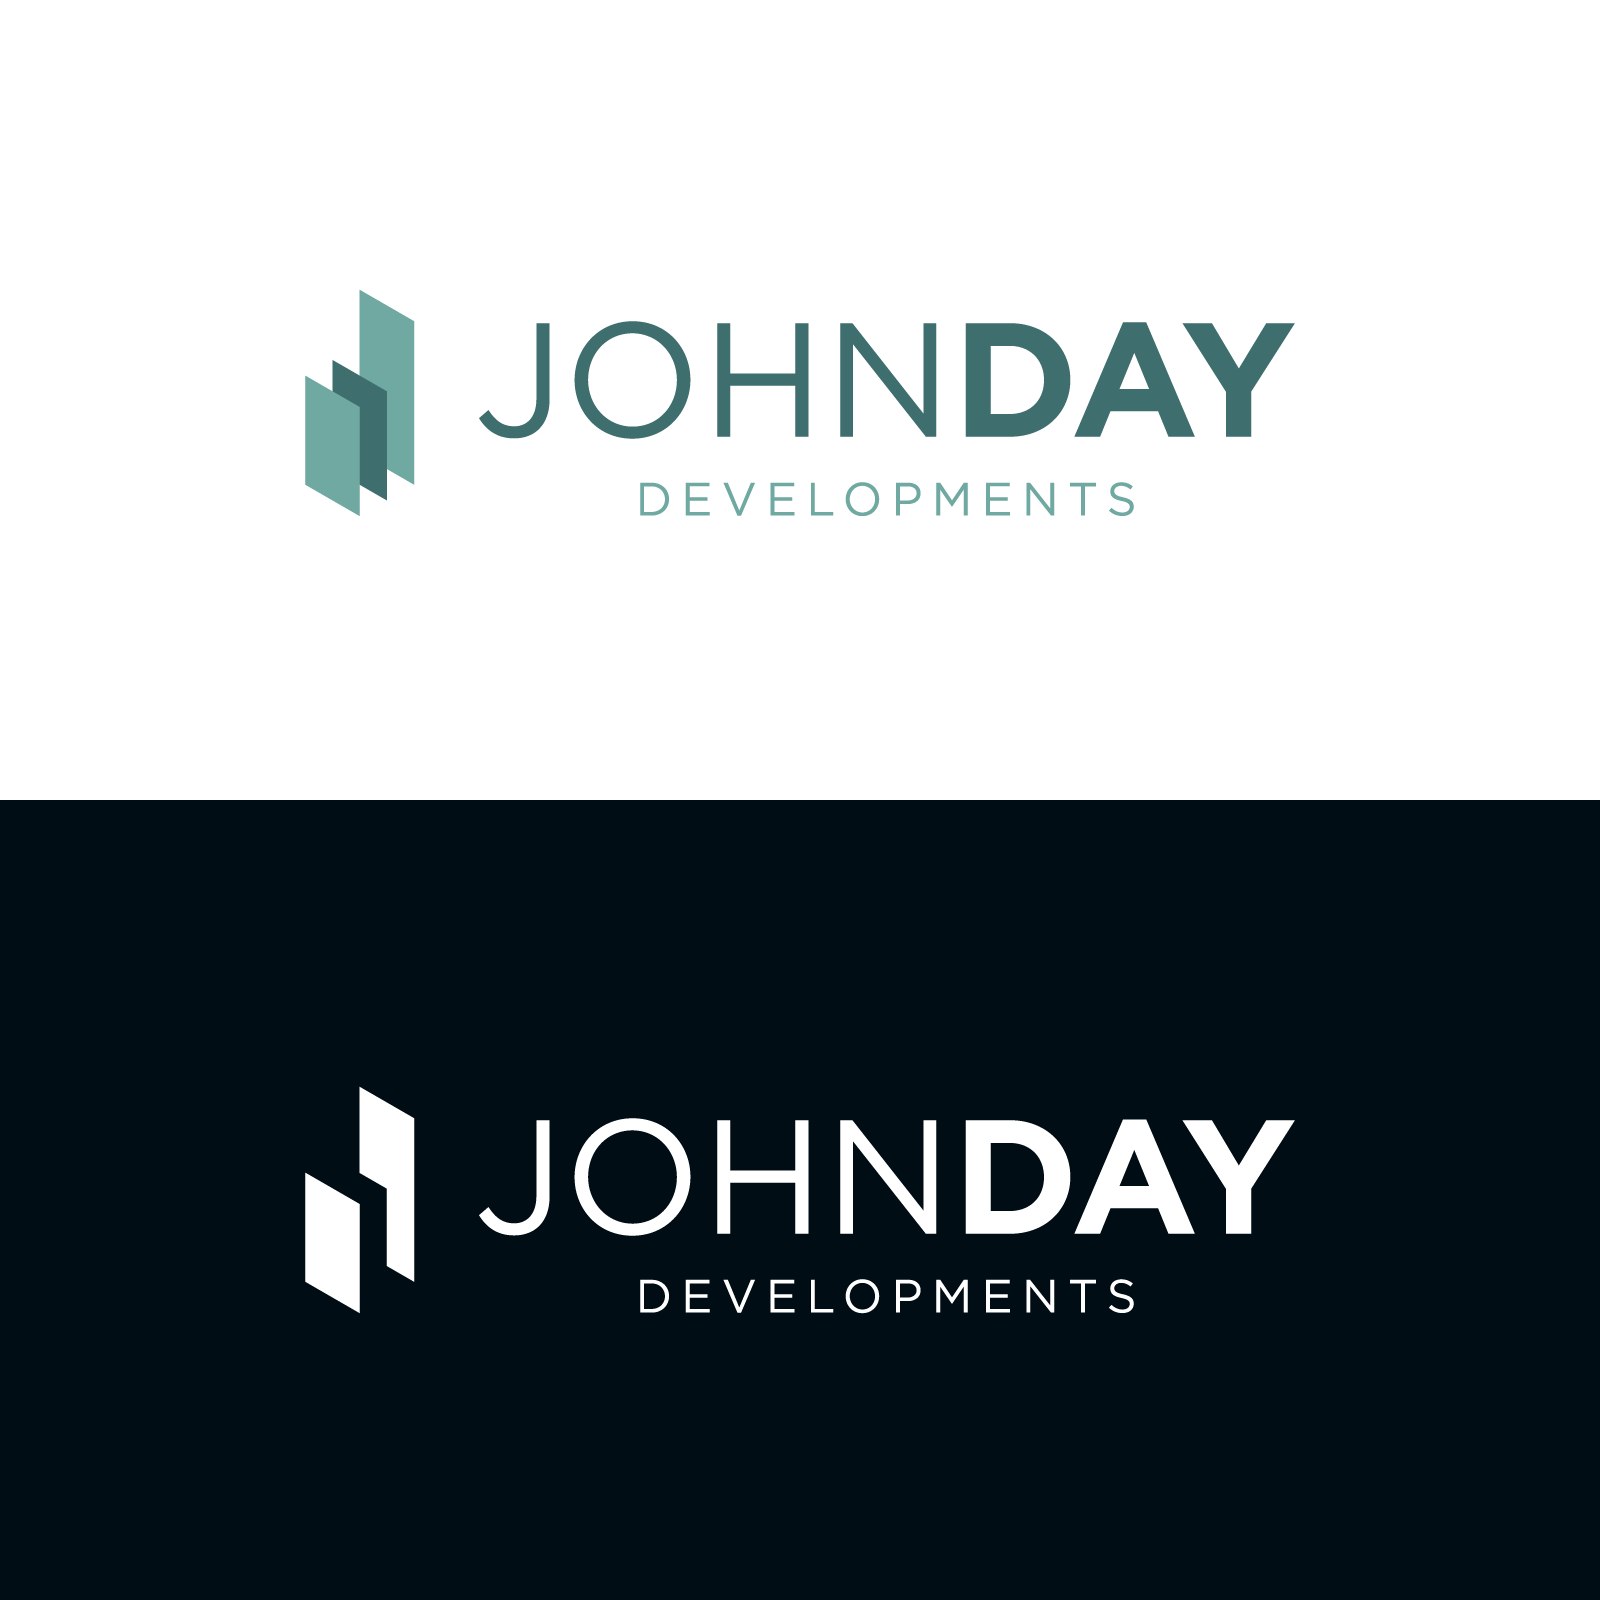 Alternate John Day Developments logo redesign option